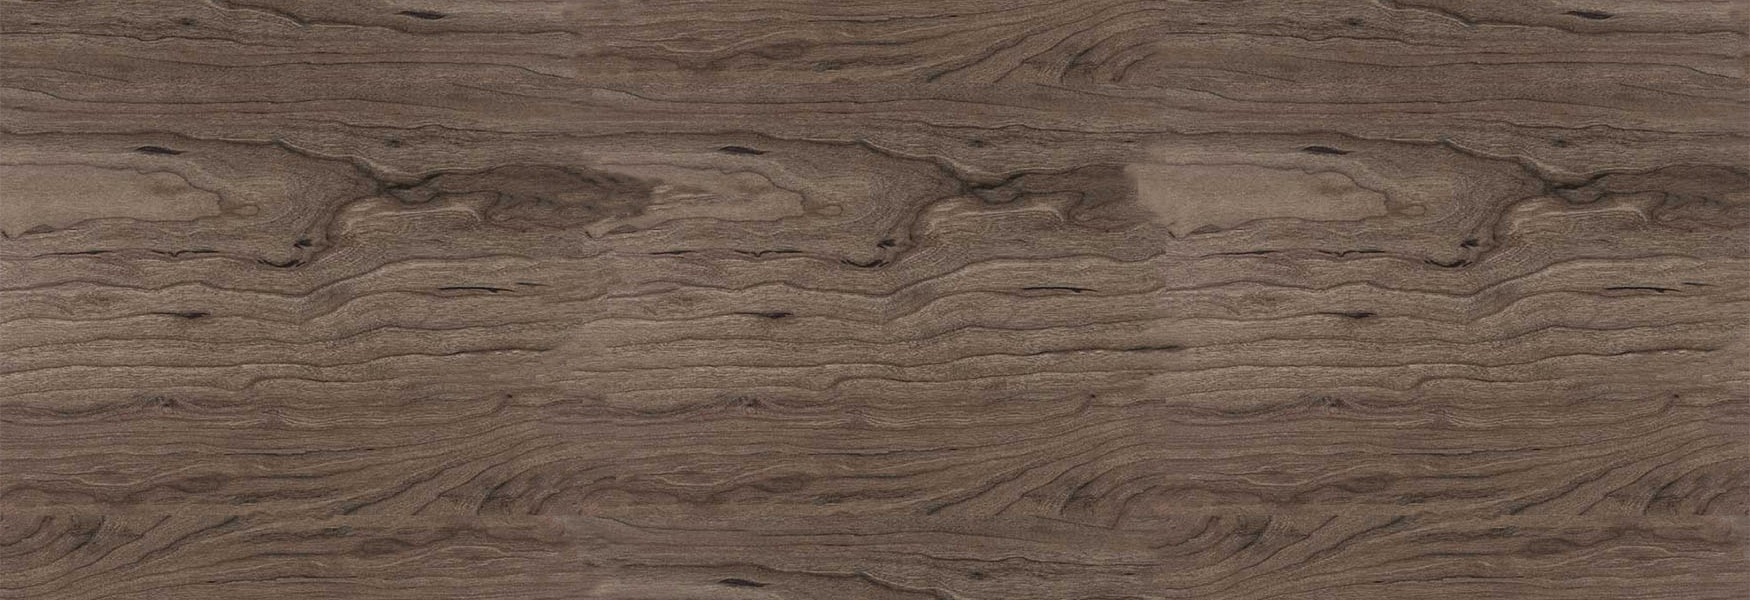 Uniboard Laminate Inspired Walnut